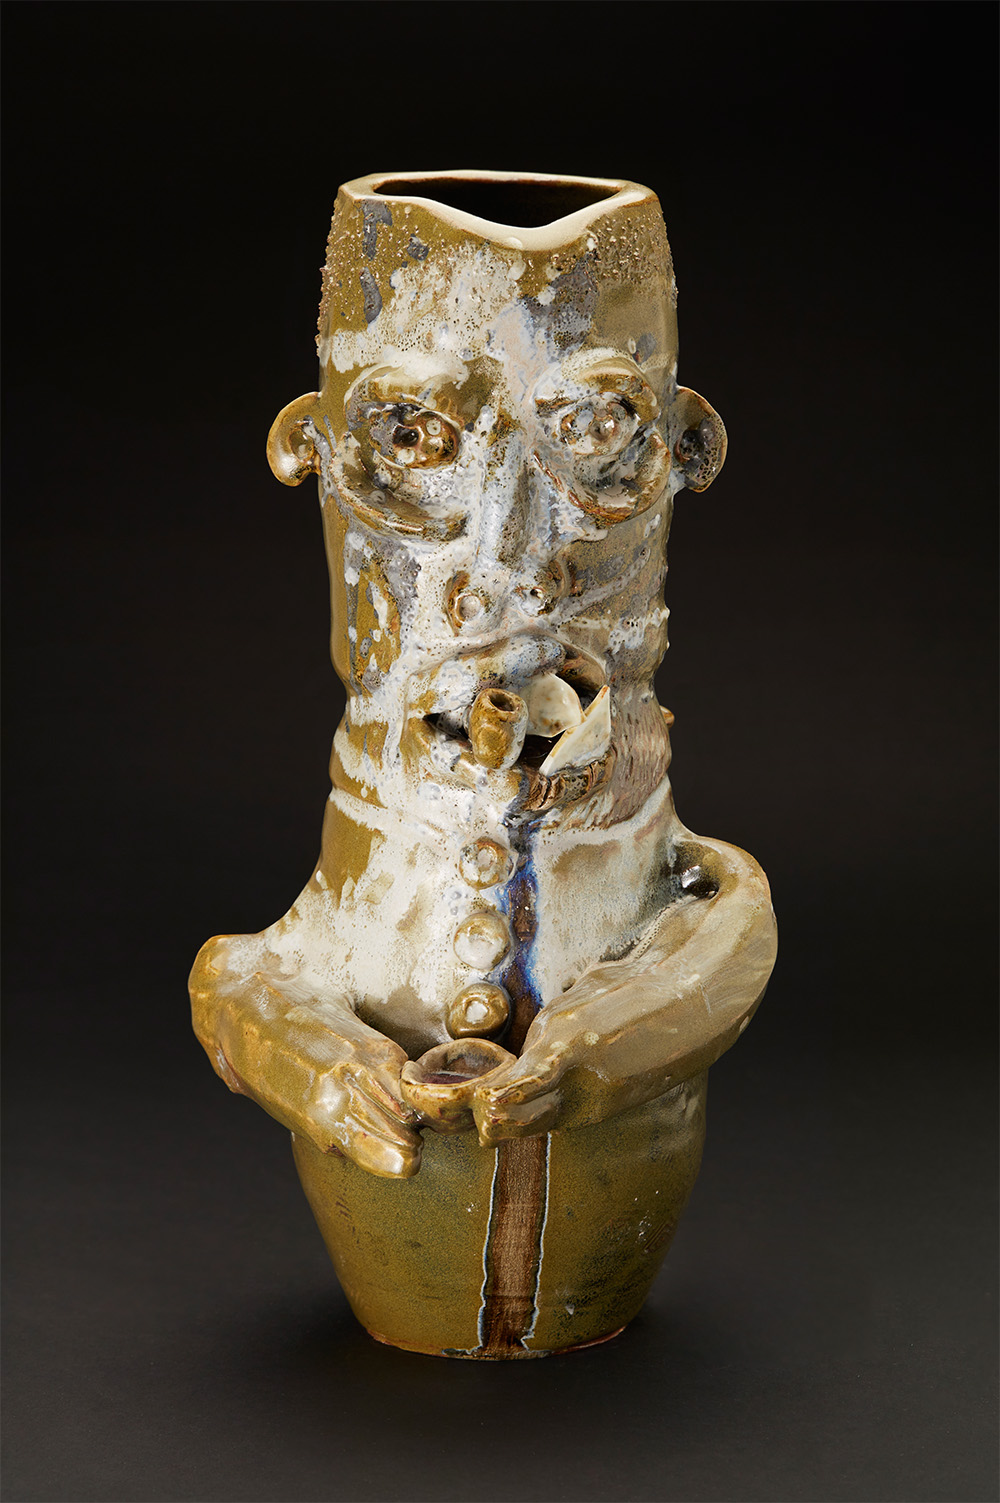 Jim McDowell    Gonna Lay Down My Sword And Shield  , 2016 Ceramic, fired in a gas soda kiln; made of high fire clay, glazed with Jack Troy root beer glaze and white shino; embellished with blue glass 16 x 7.5 x 9 inches 40.6 x 19.1 x 22.9 cm JMcD 10